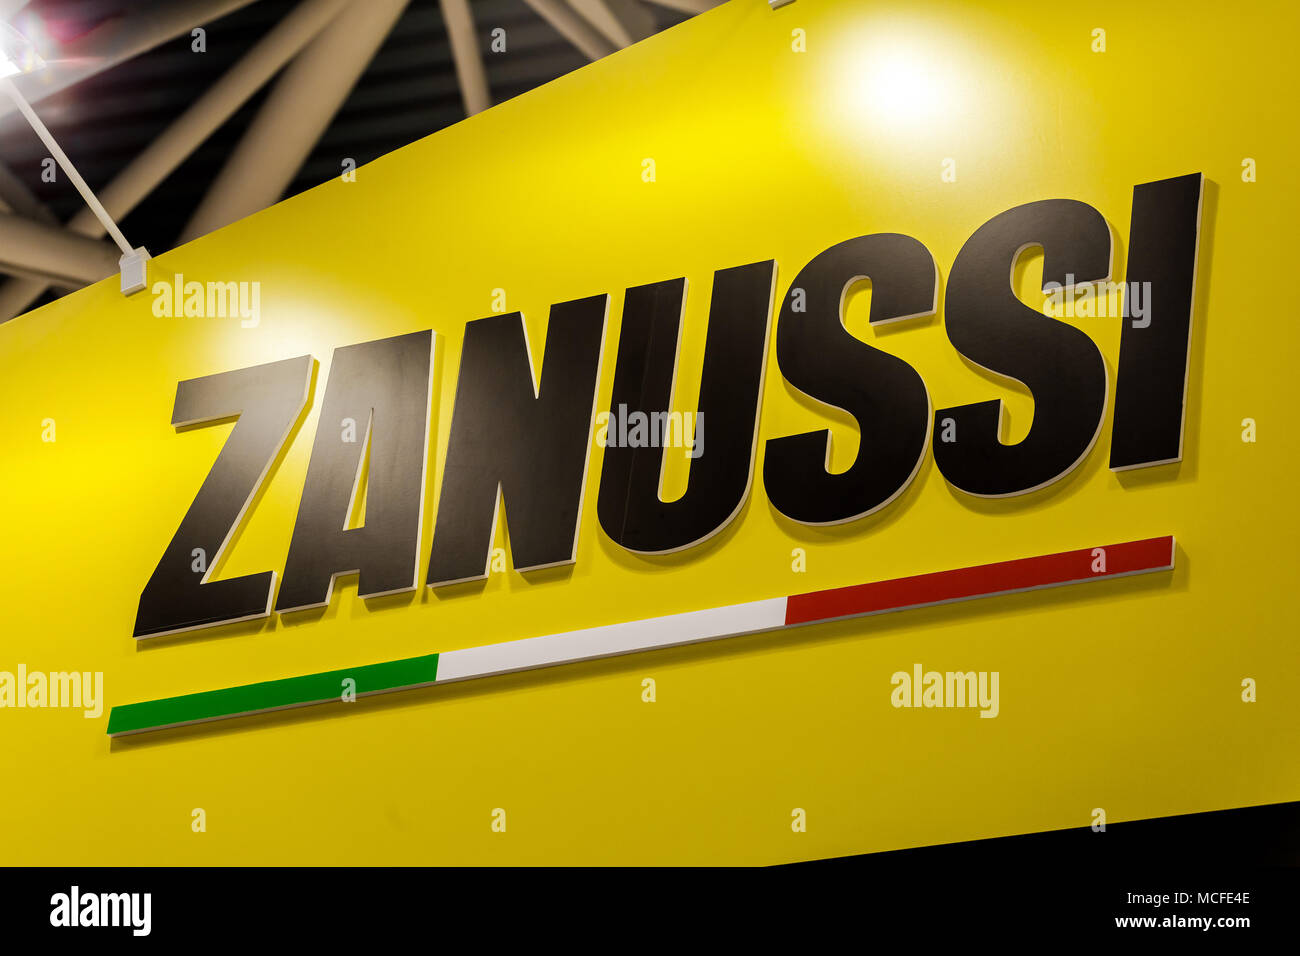 Zanussi logo company sign on the wall. Zanussi is an Italian producer of home appliances - Stock Image